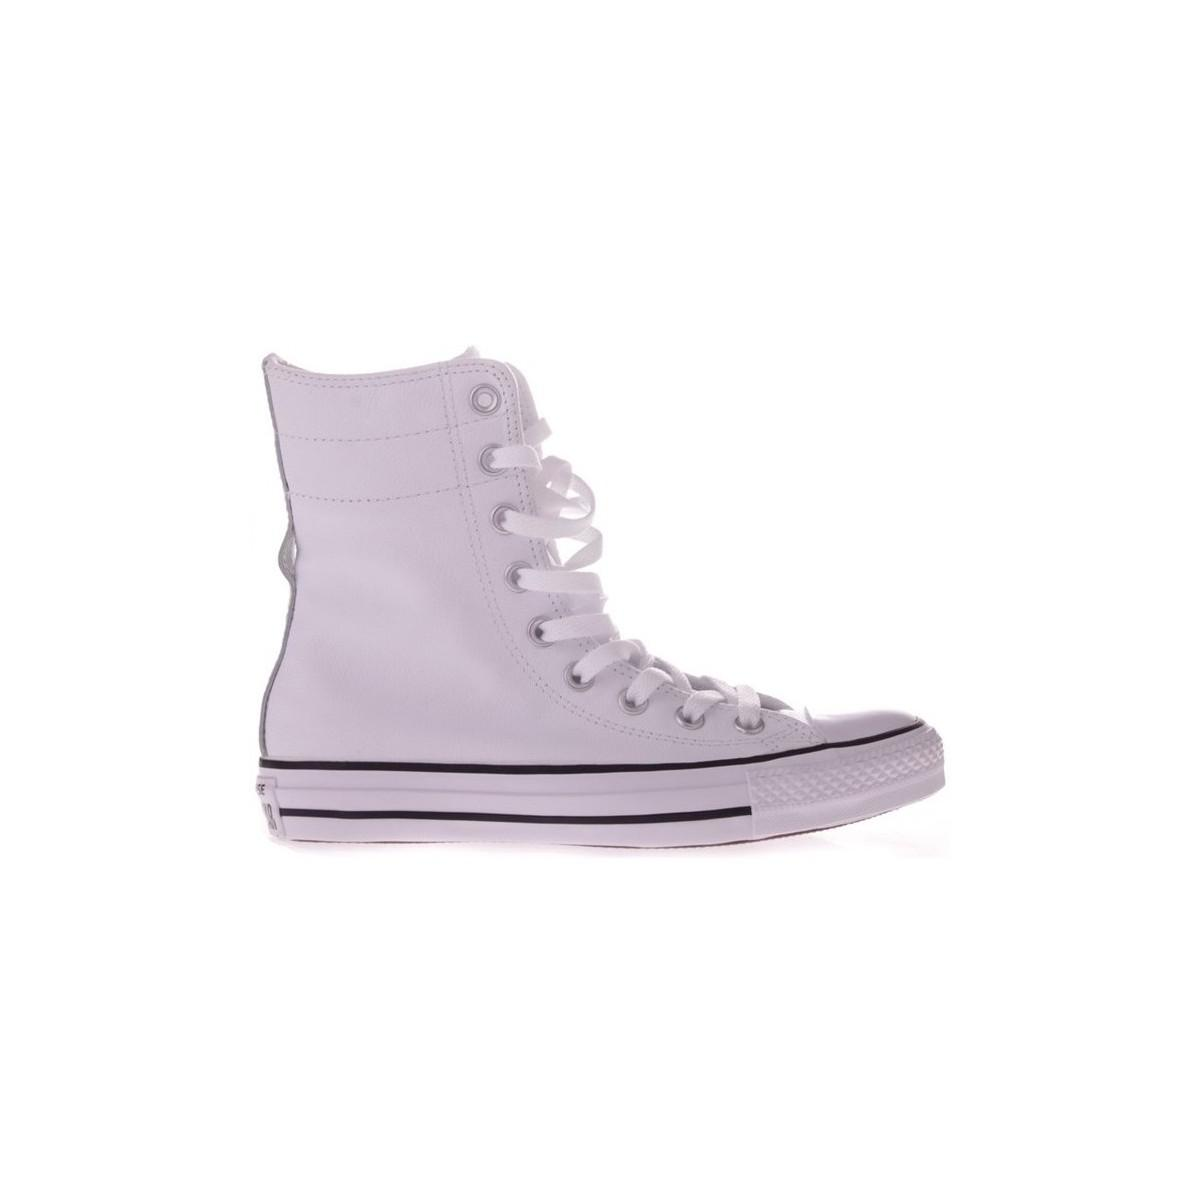 3f07a61cfdc Converse Chuck Taylor Hirise Xhi Men's Shoes (high-top Trainers) In ...